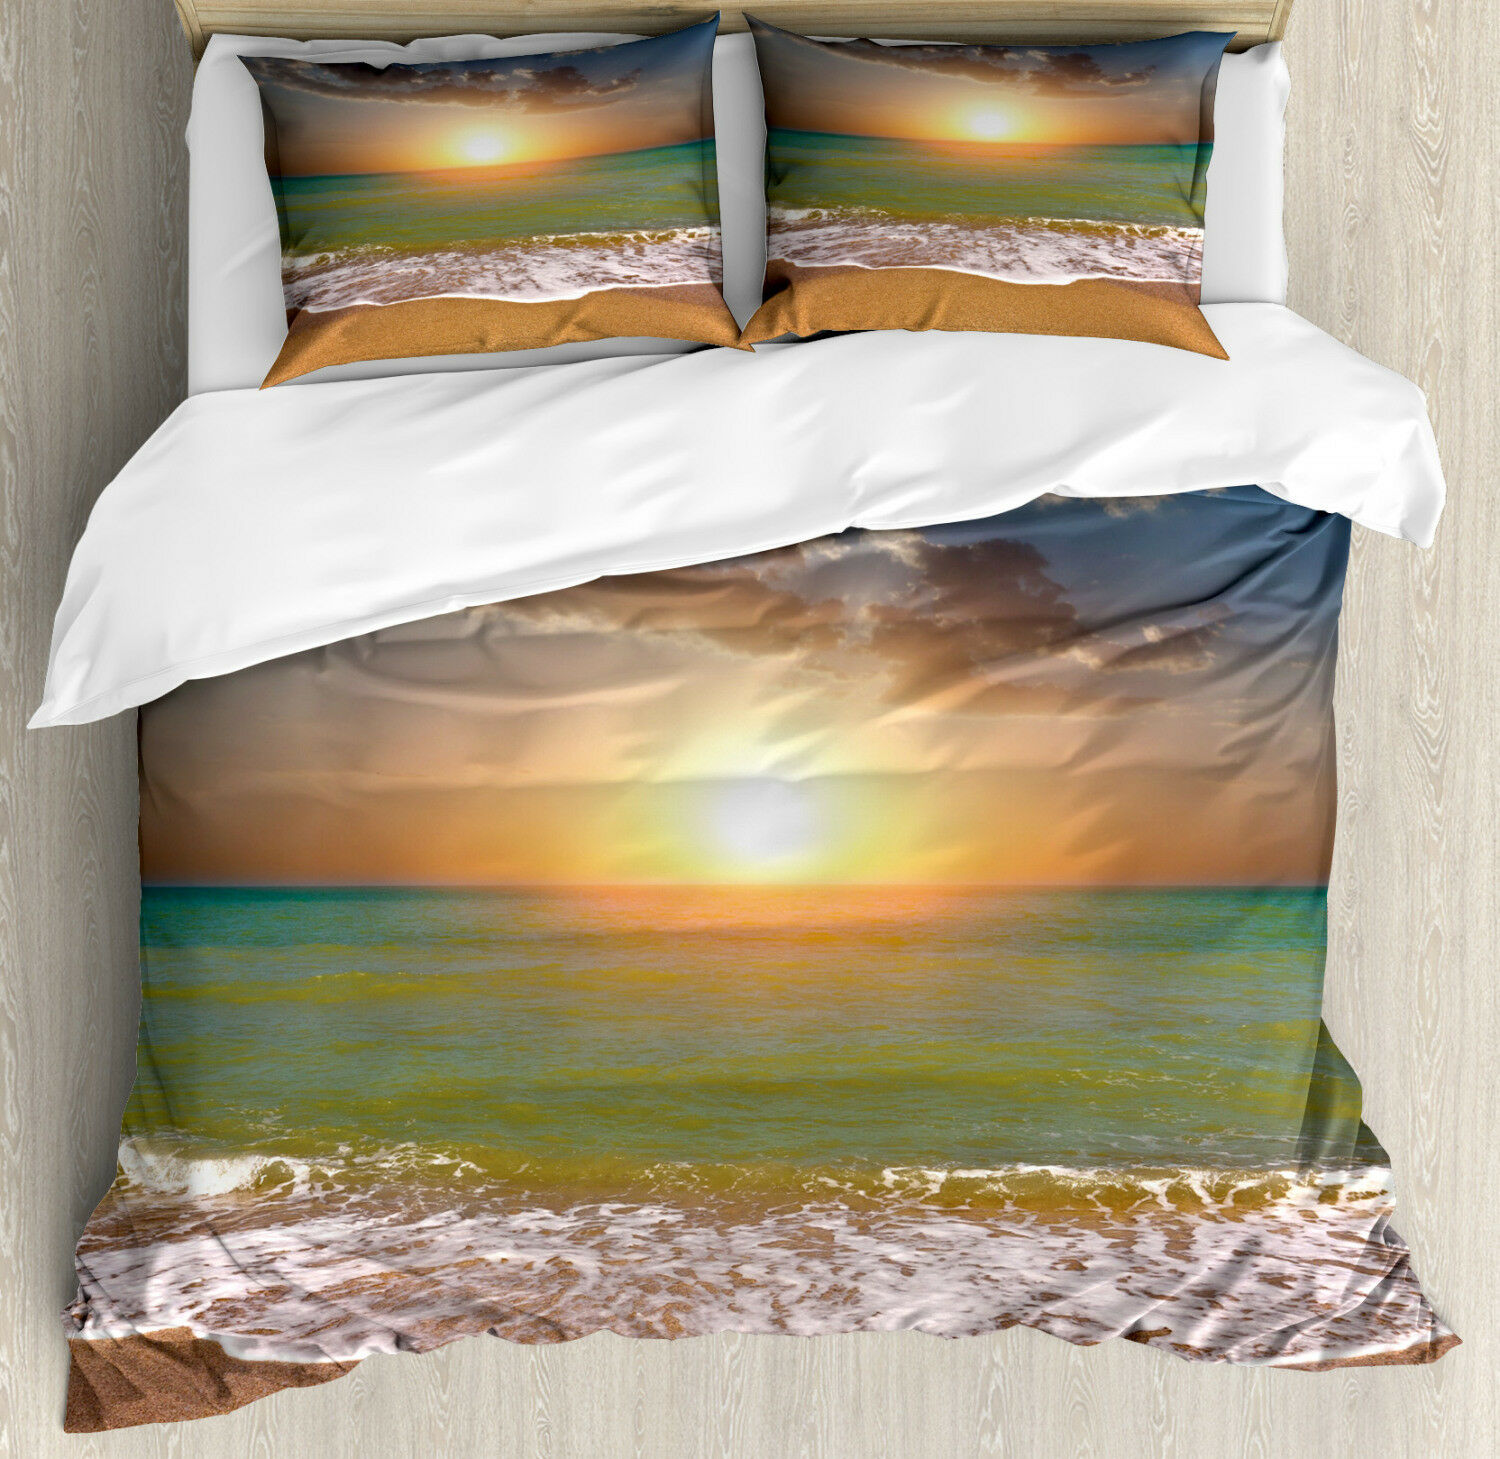 Sunset Duvet Cover Set with Pillow Shams Idyllic Beach Scenery Print